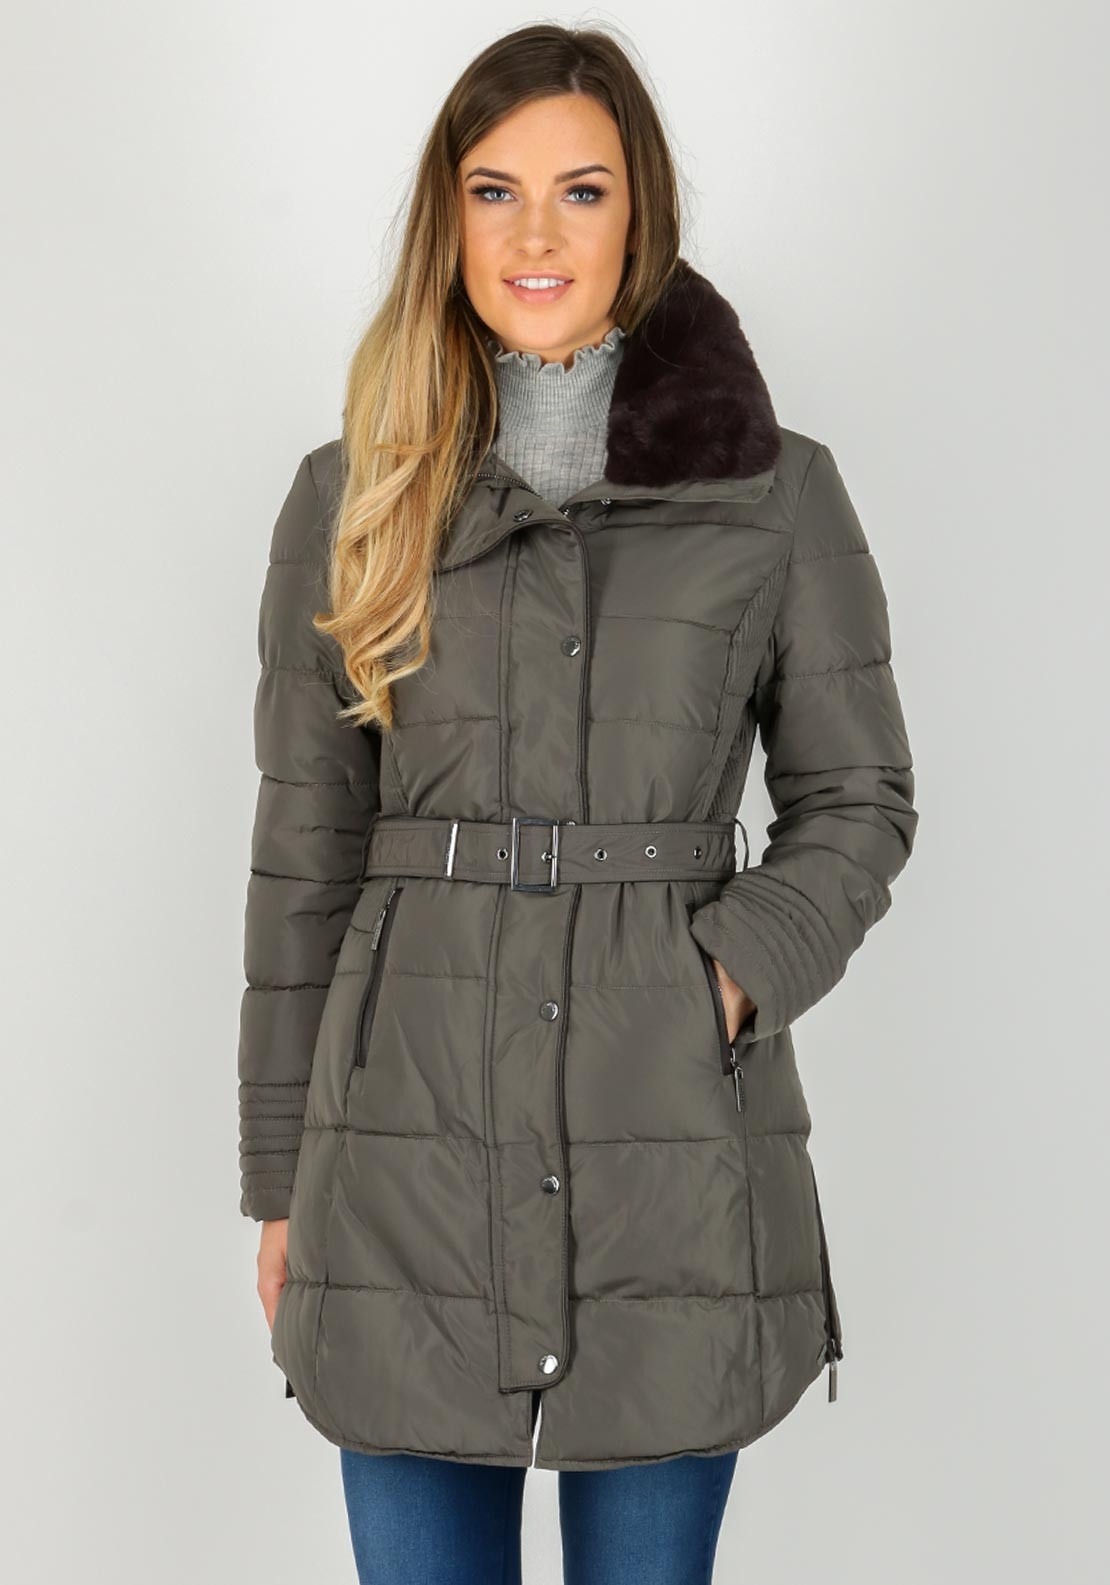 Rino & Pelle Blush Faux Fur Trim Quilted Coat, Olive Green